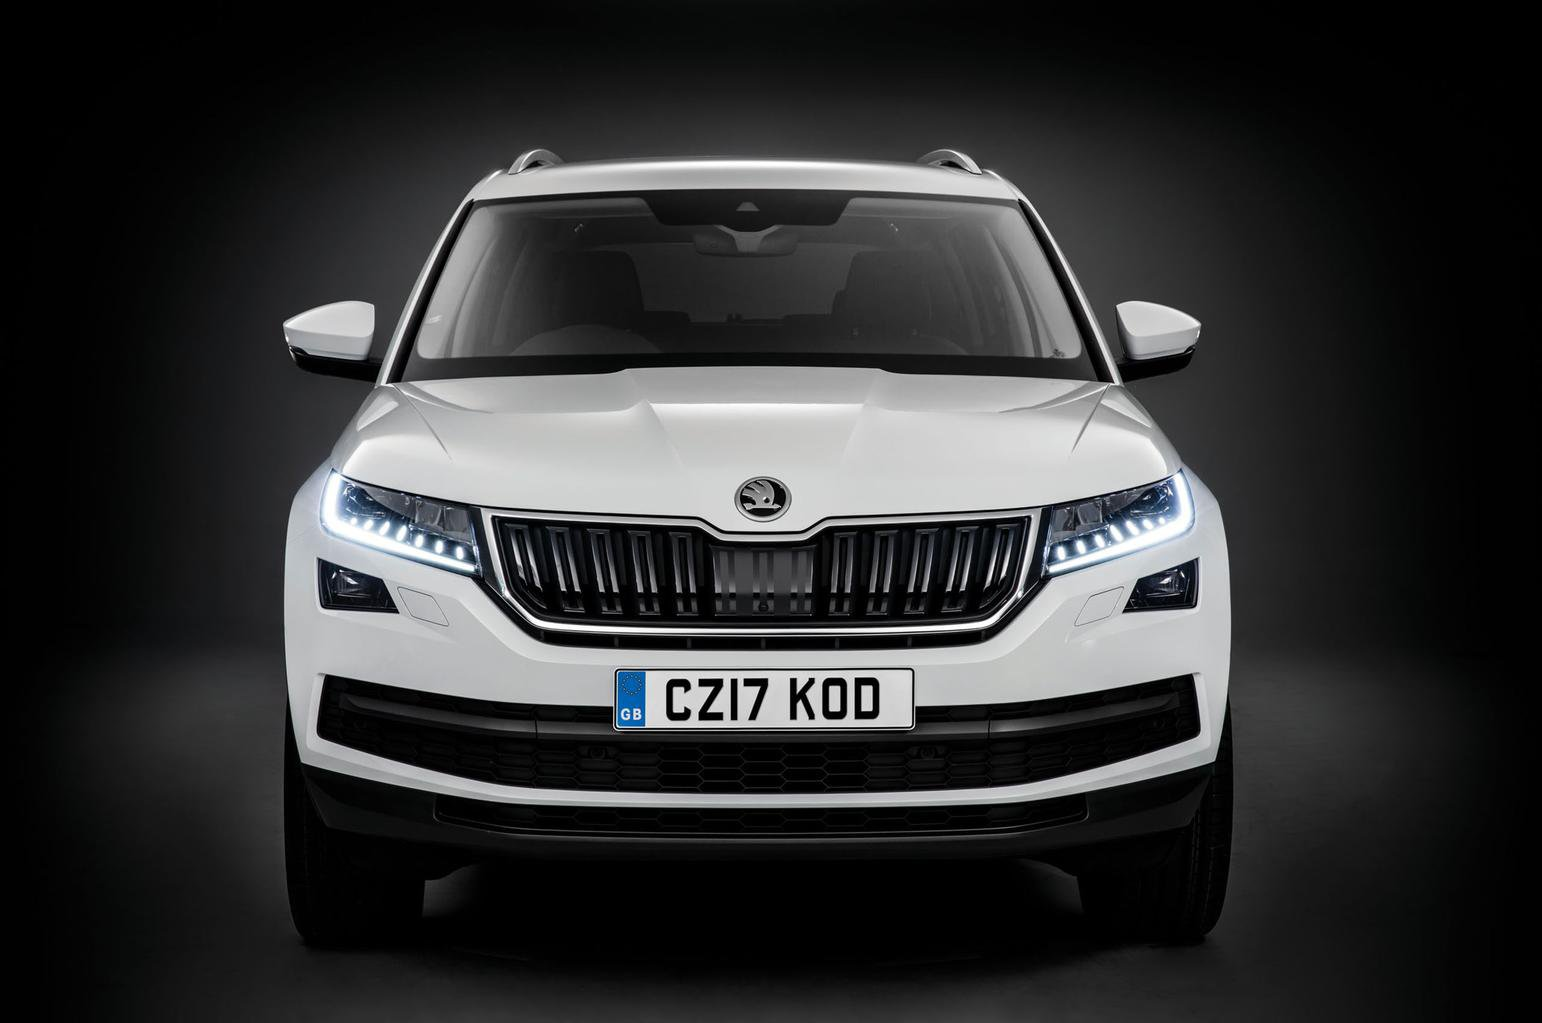 New Skoda Kodiaq - everything you need to know, plus video